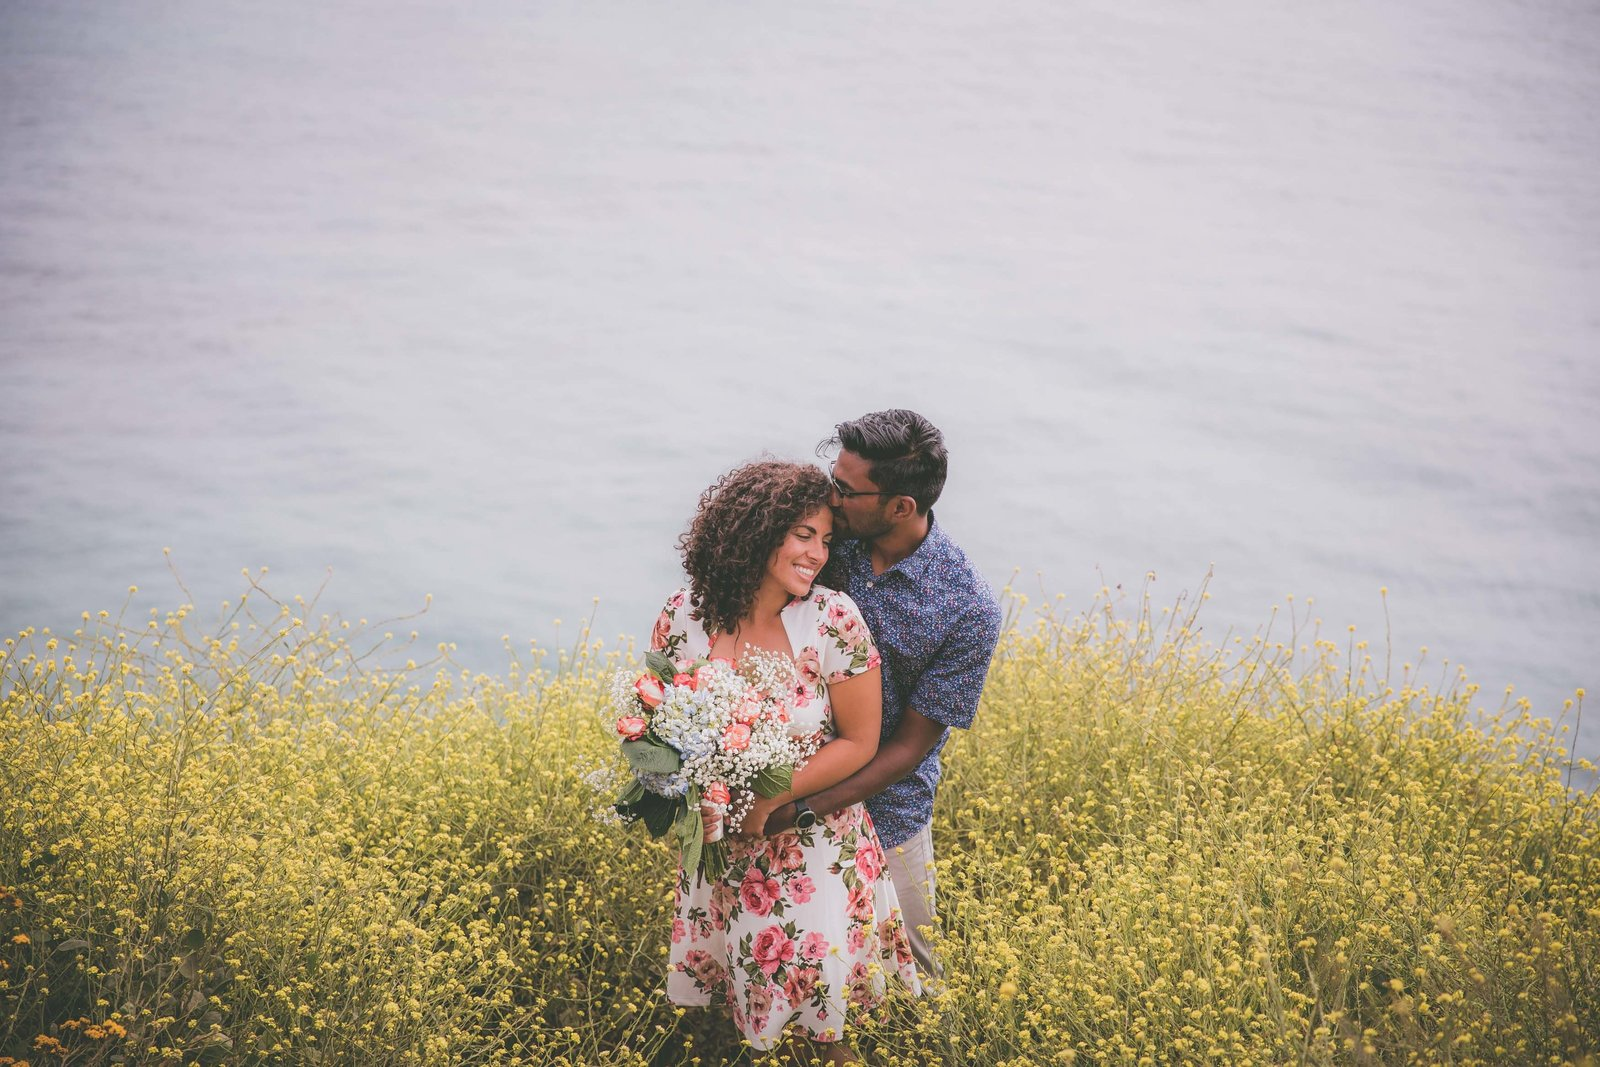 Man kisses future wife in field on yellow wildflowers in Big Sur.